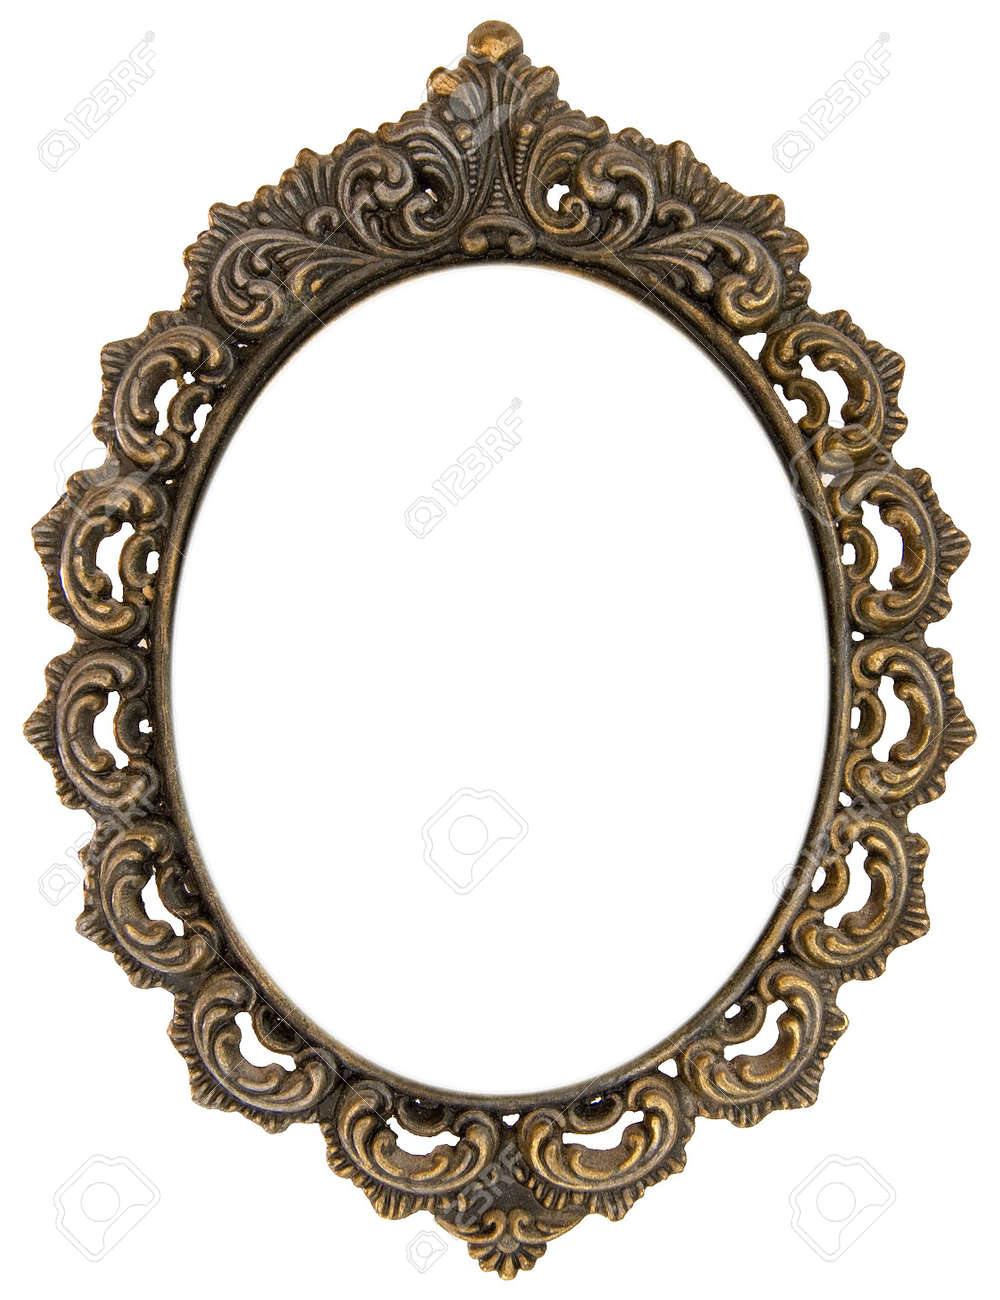 Ornate Antique Oval Frame Stock Photo, Picture And Royalty Free ...